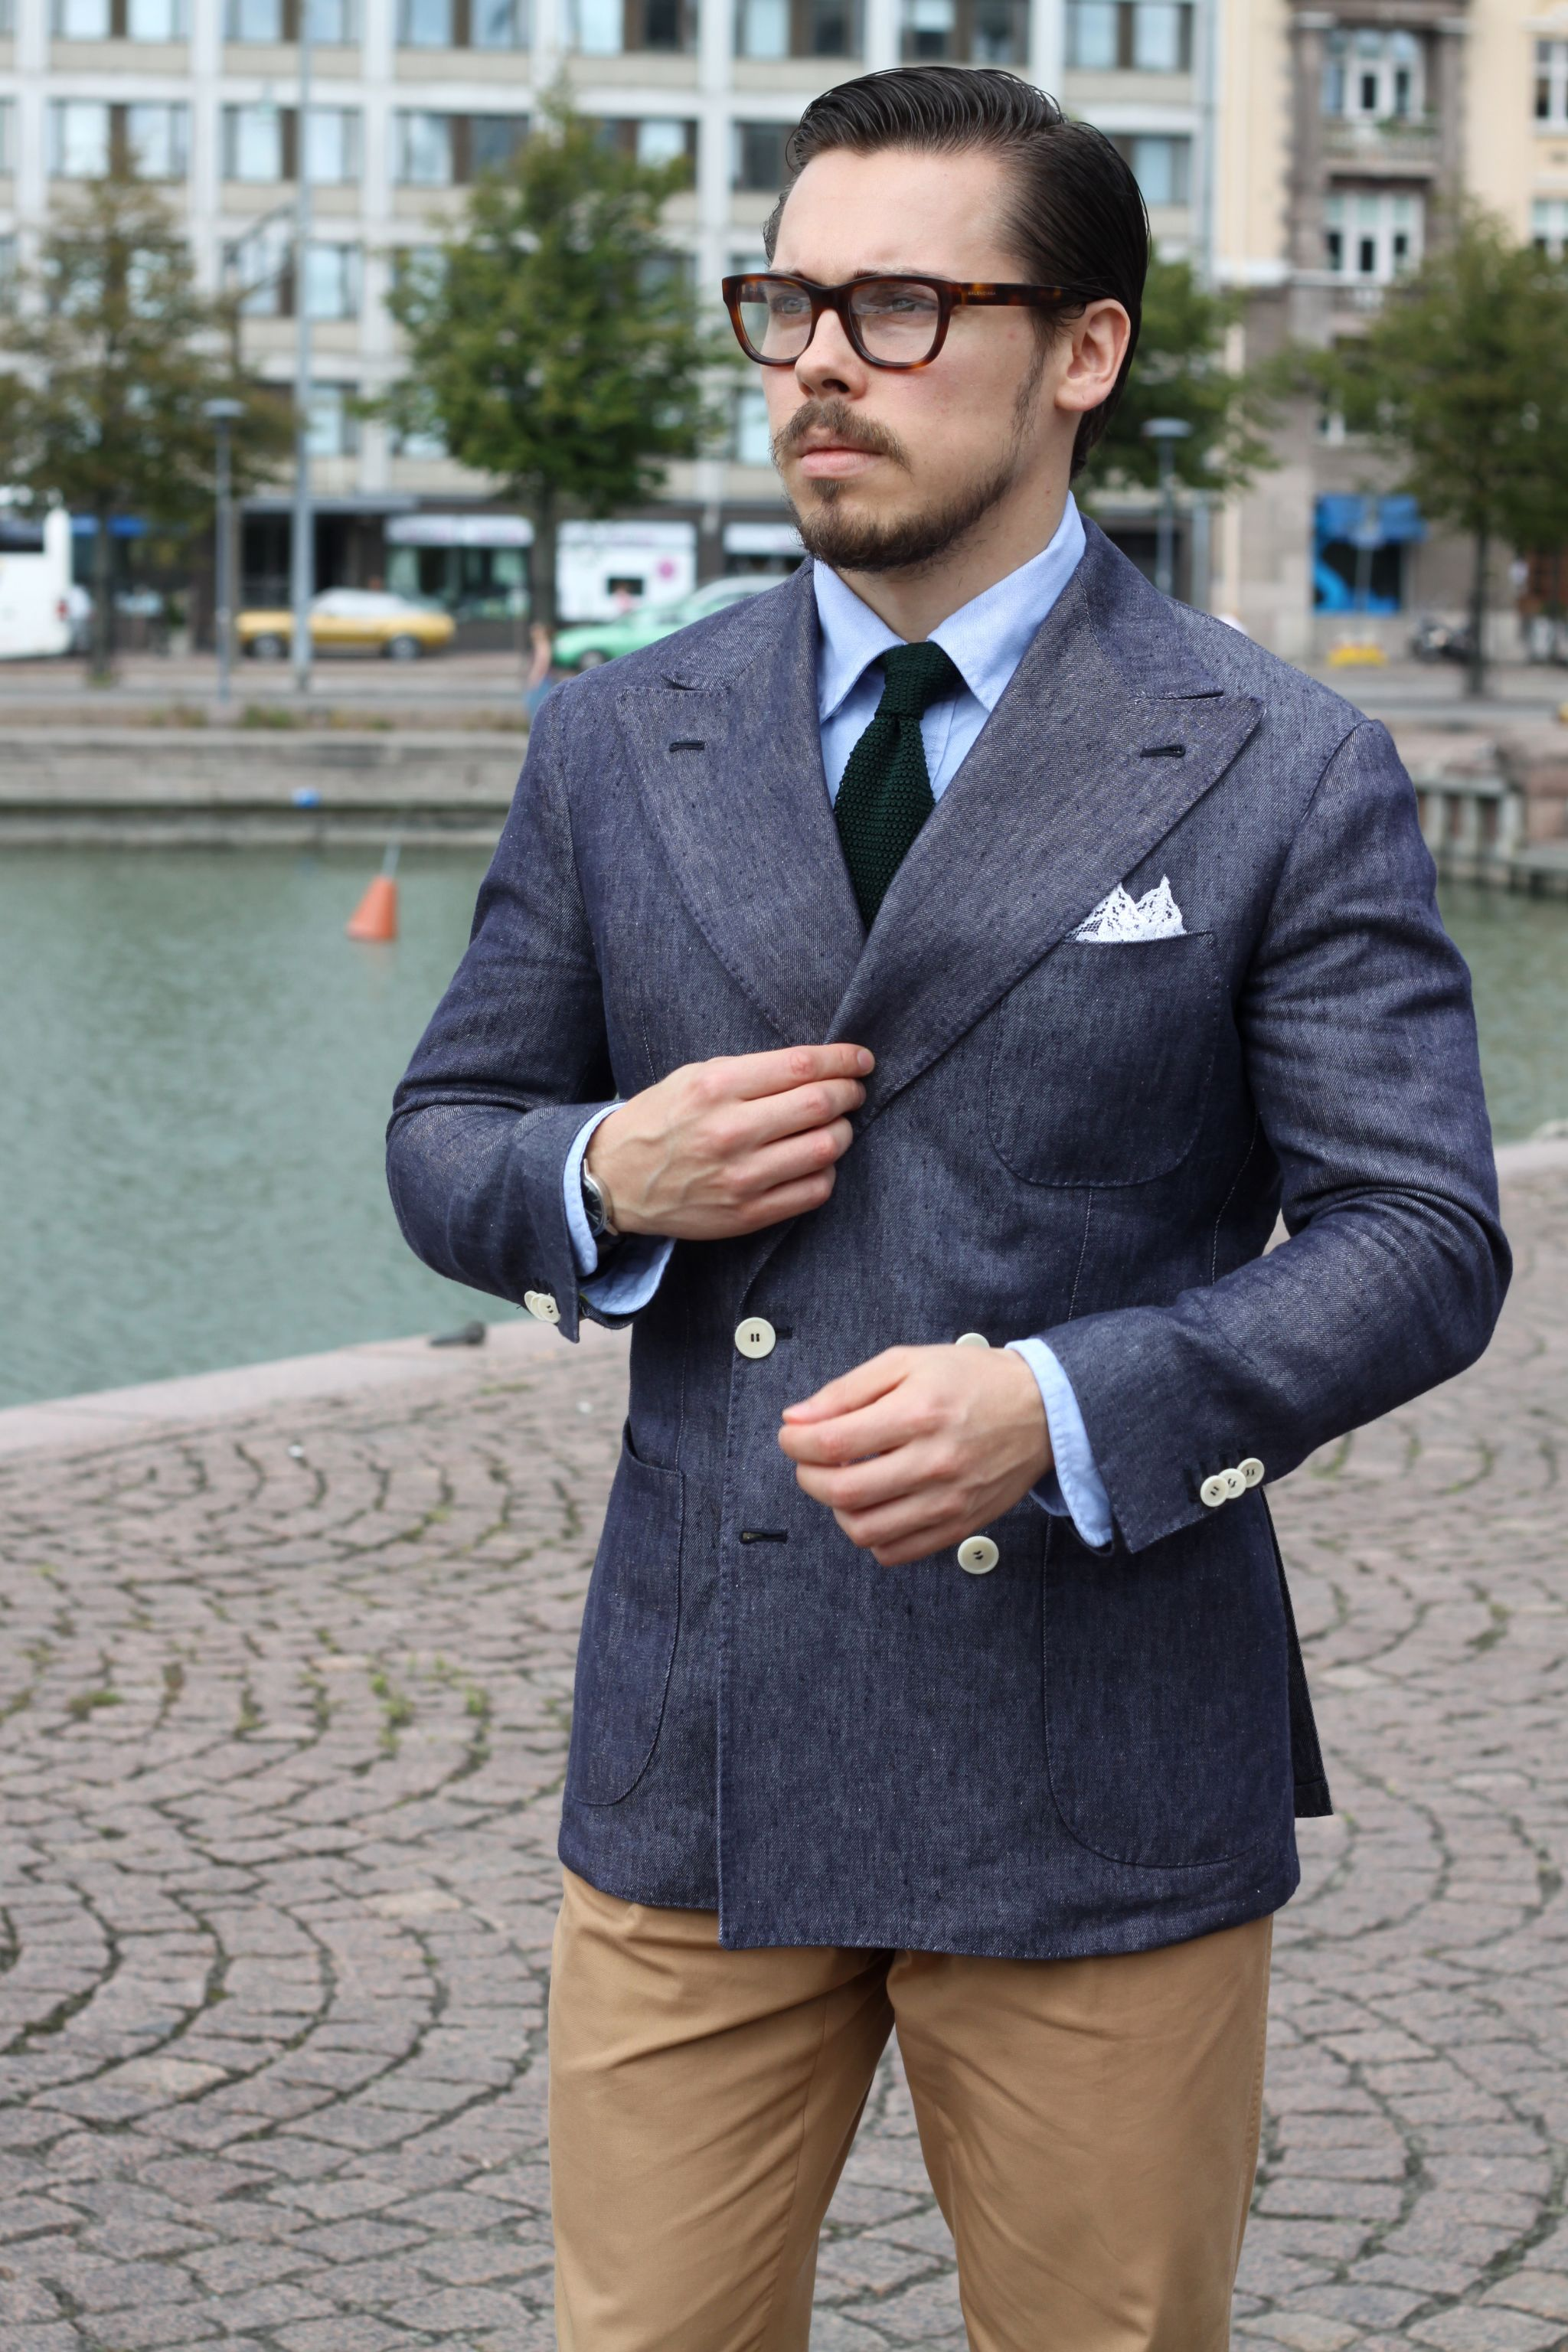 Cotton suit trousers and double breasted blazer